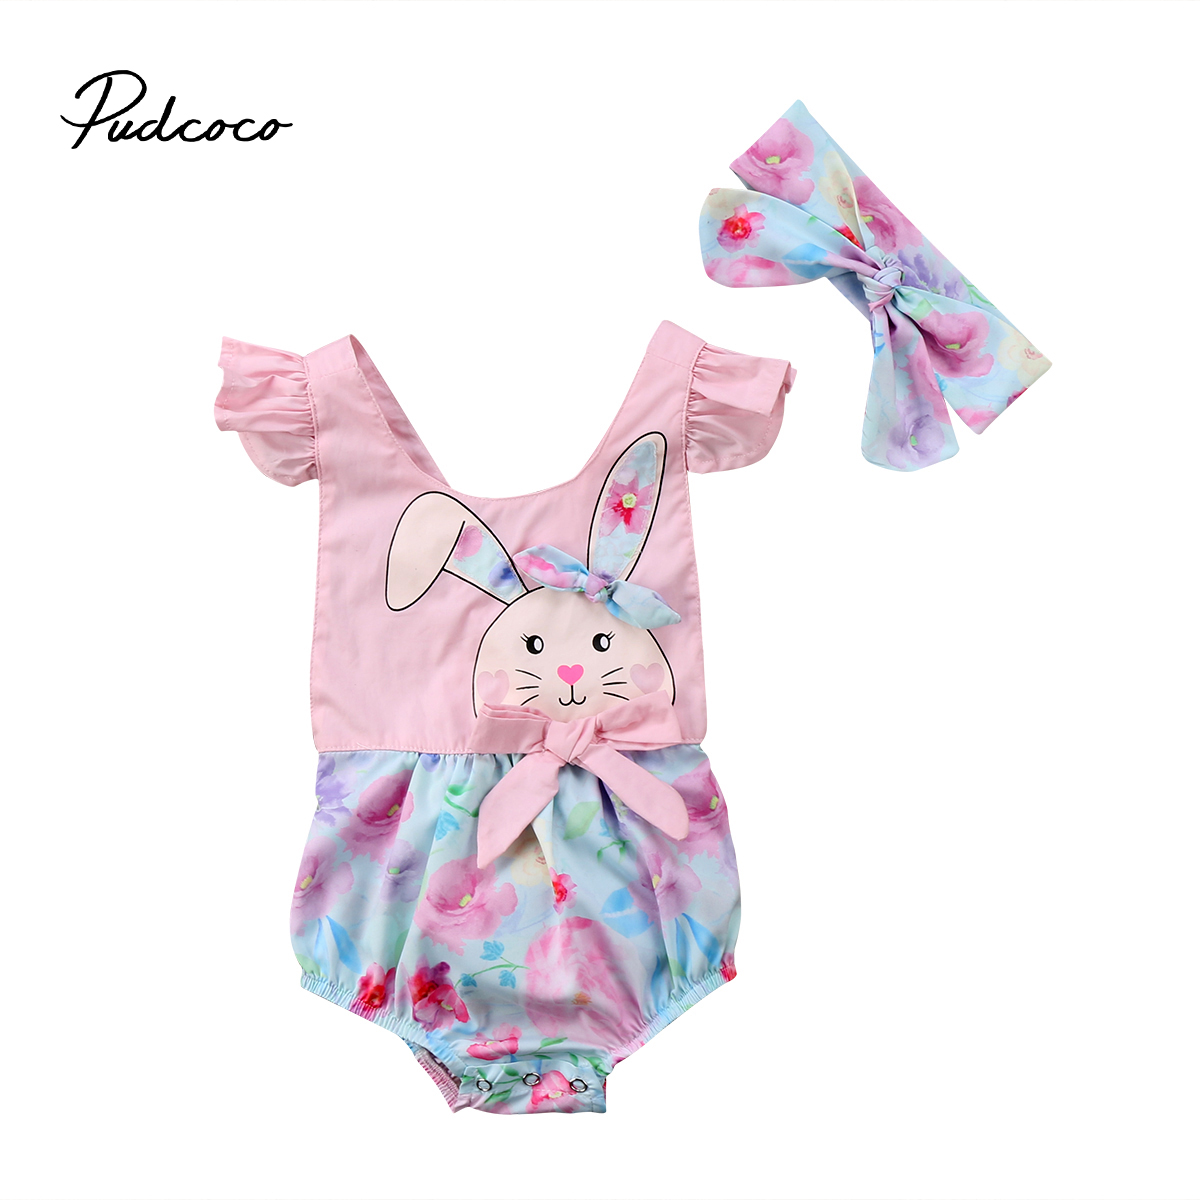 2018 New Easter Floral Romper Newborn Baby Girl Bunny Romper Flying Sleeve Jumpsuit Outfits Summer Flower Clothes 0-24M summer newborn infant baby girl romper short sleeve floral romper jumpsuit outfits sunsuit clothes